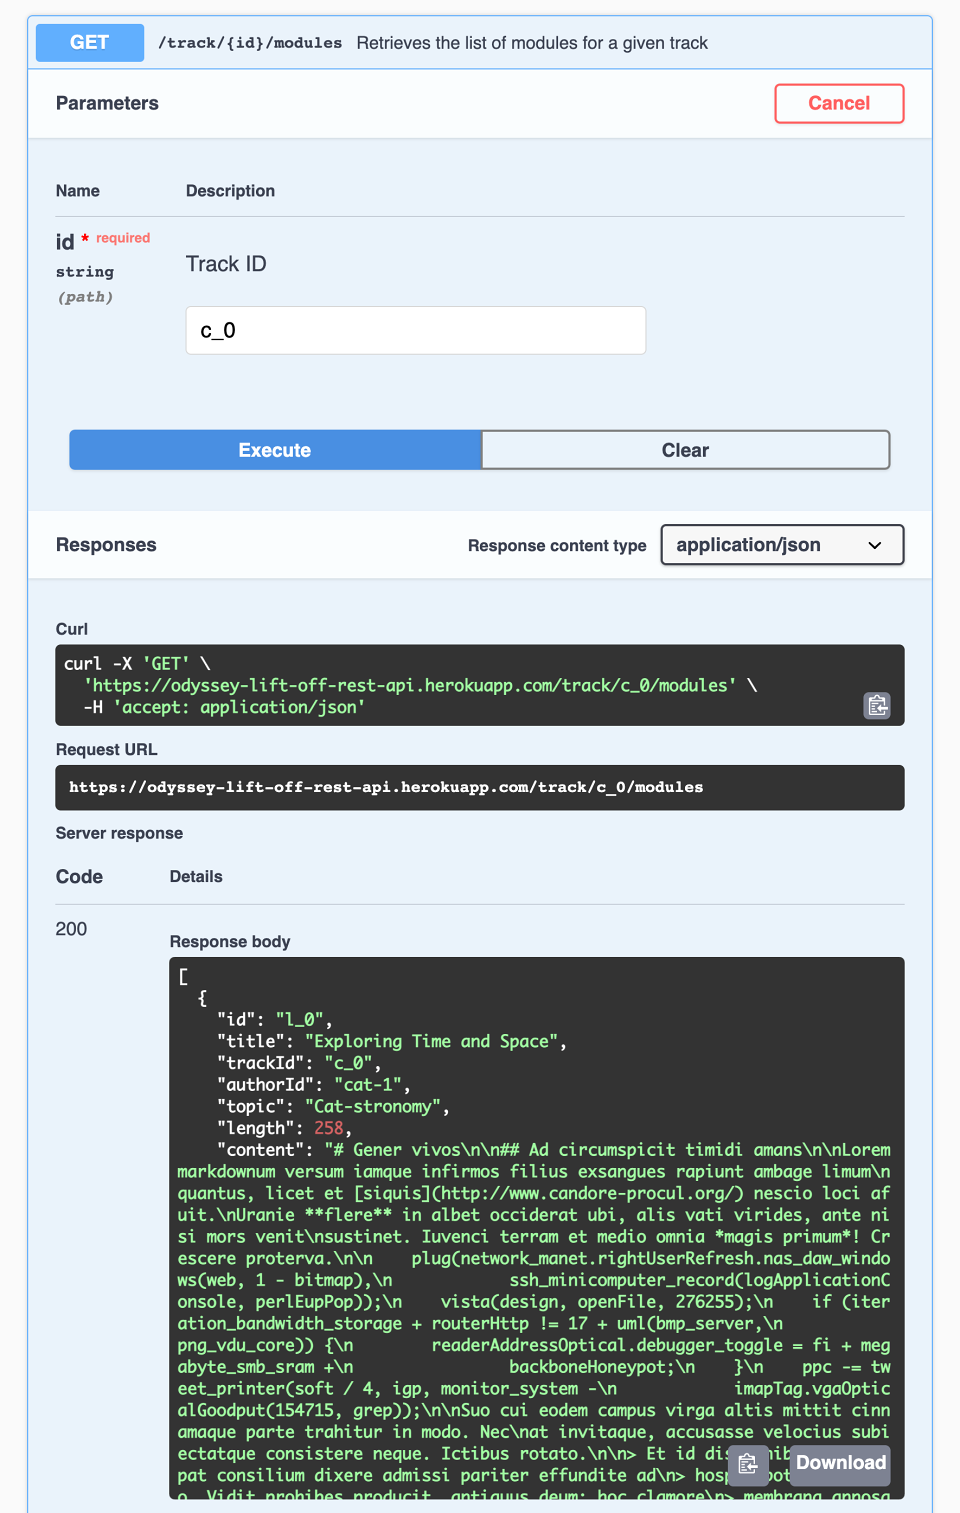 Screenshot of REST API docs with the GET track/:id/modules endpoint